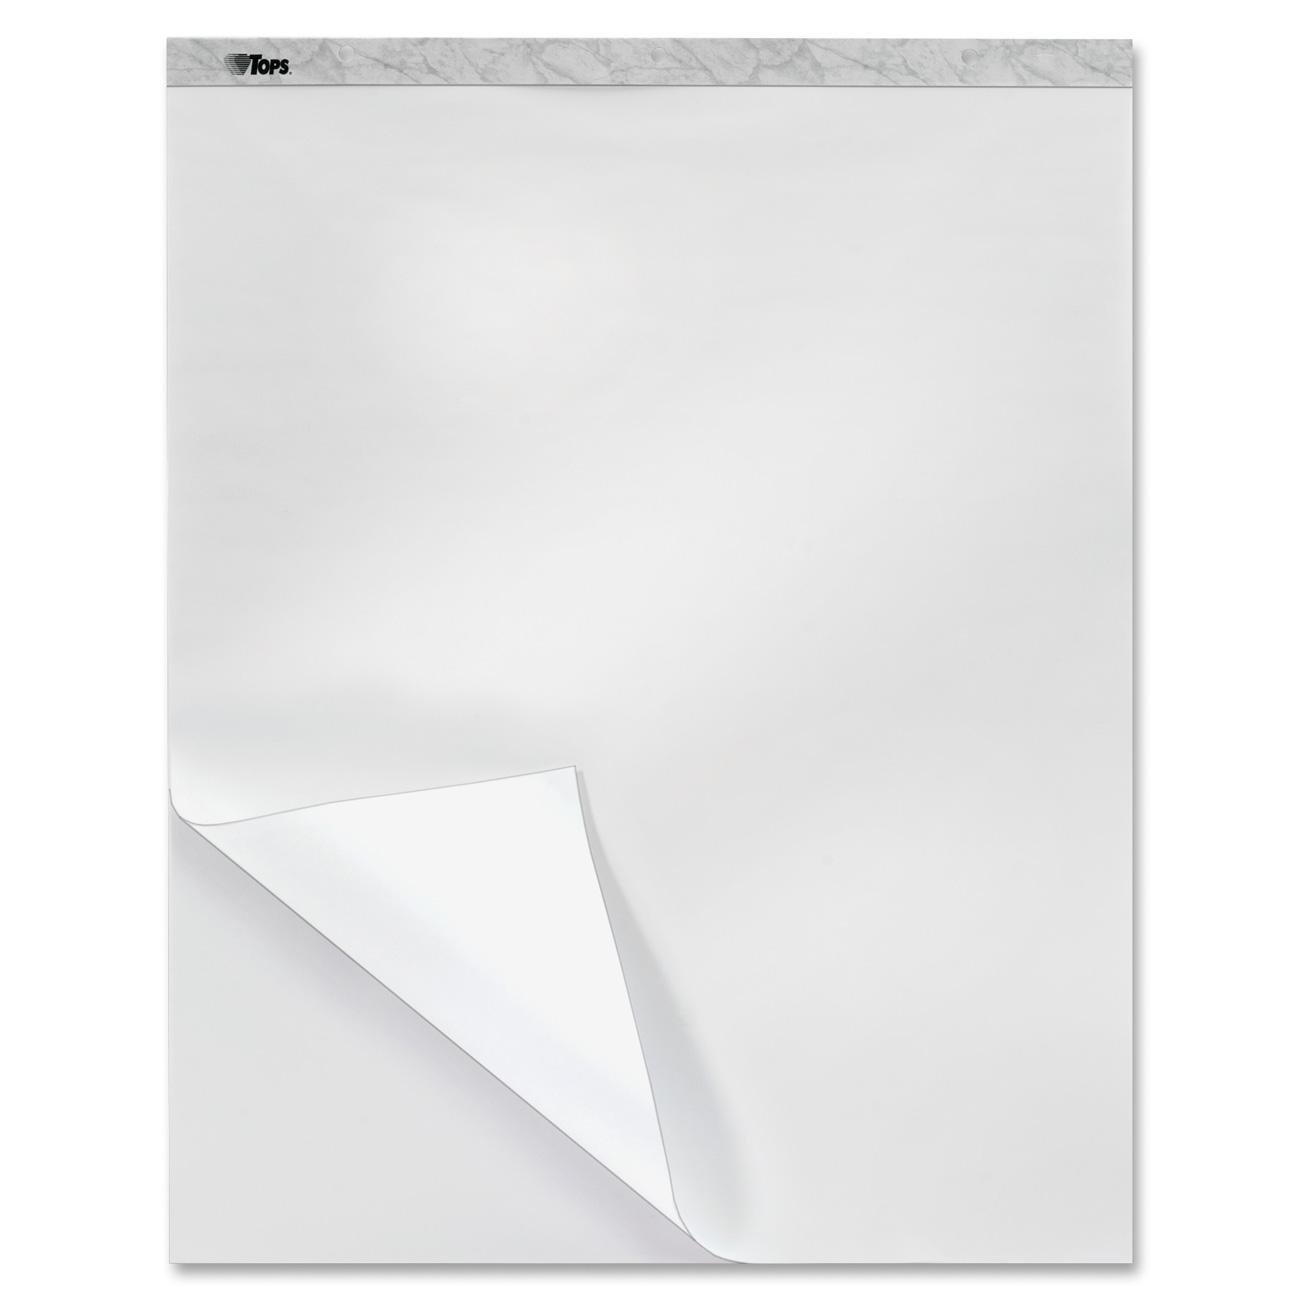 TOPS Bleed Blocker Easel Pad, 27 x 34 Inches, Recycled, 40 Sheets, White, 2 Pads (79062) by TOPS